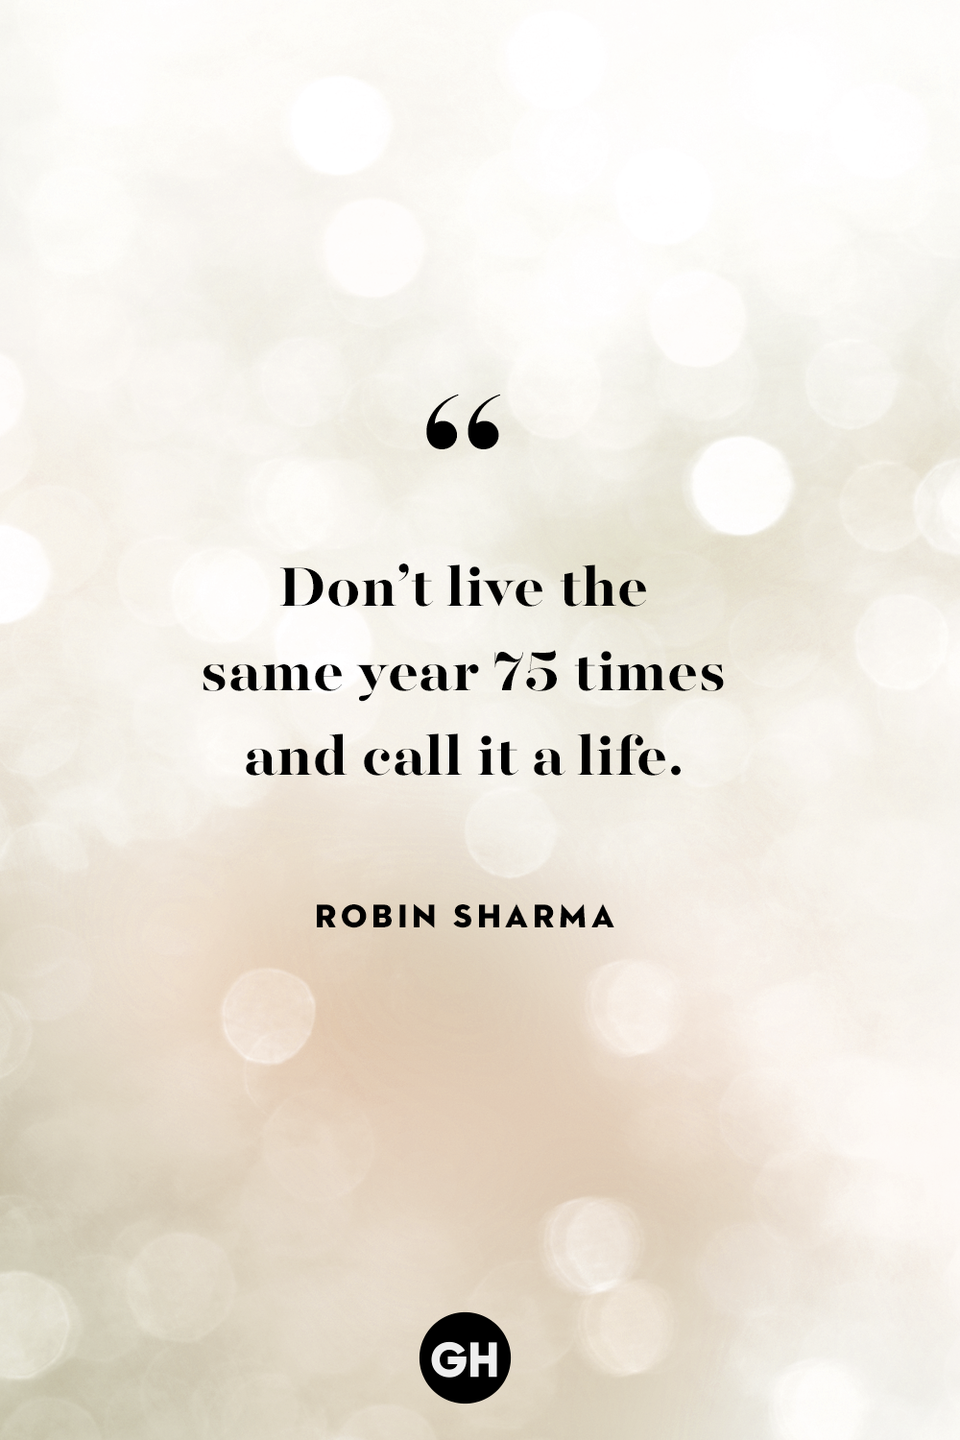 <p>Don't live the same year 75 times and call it a life.</p>